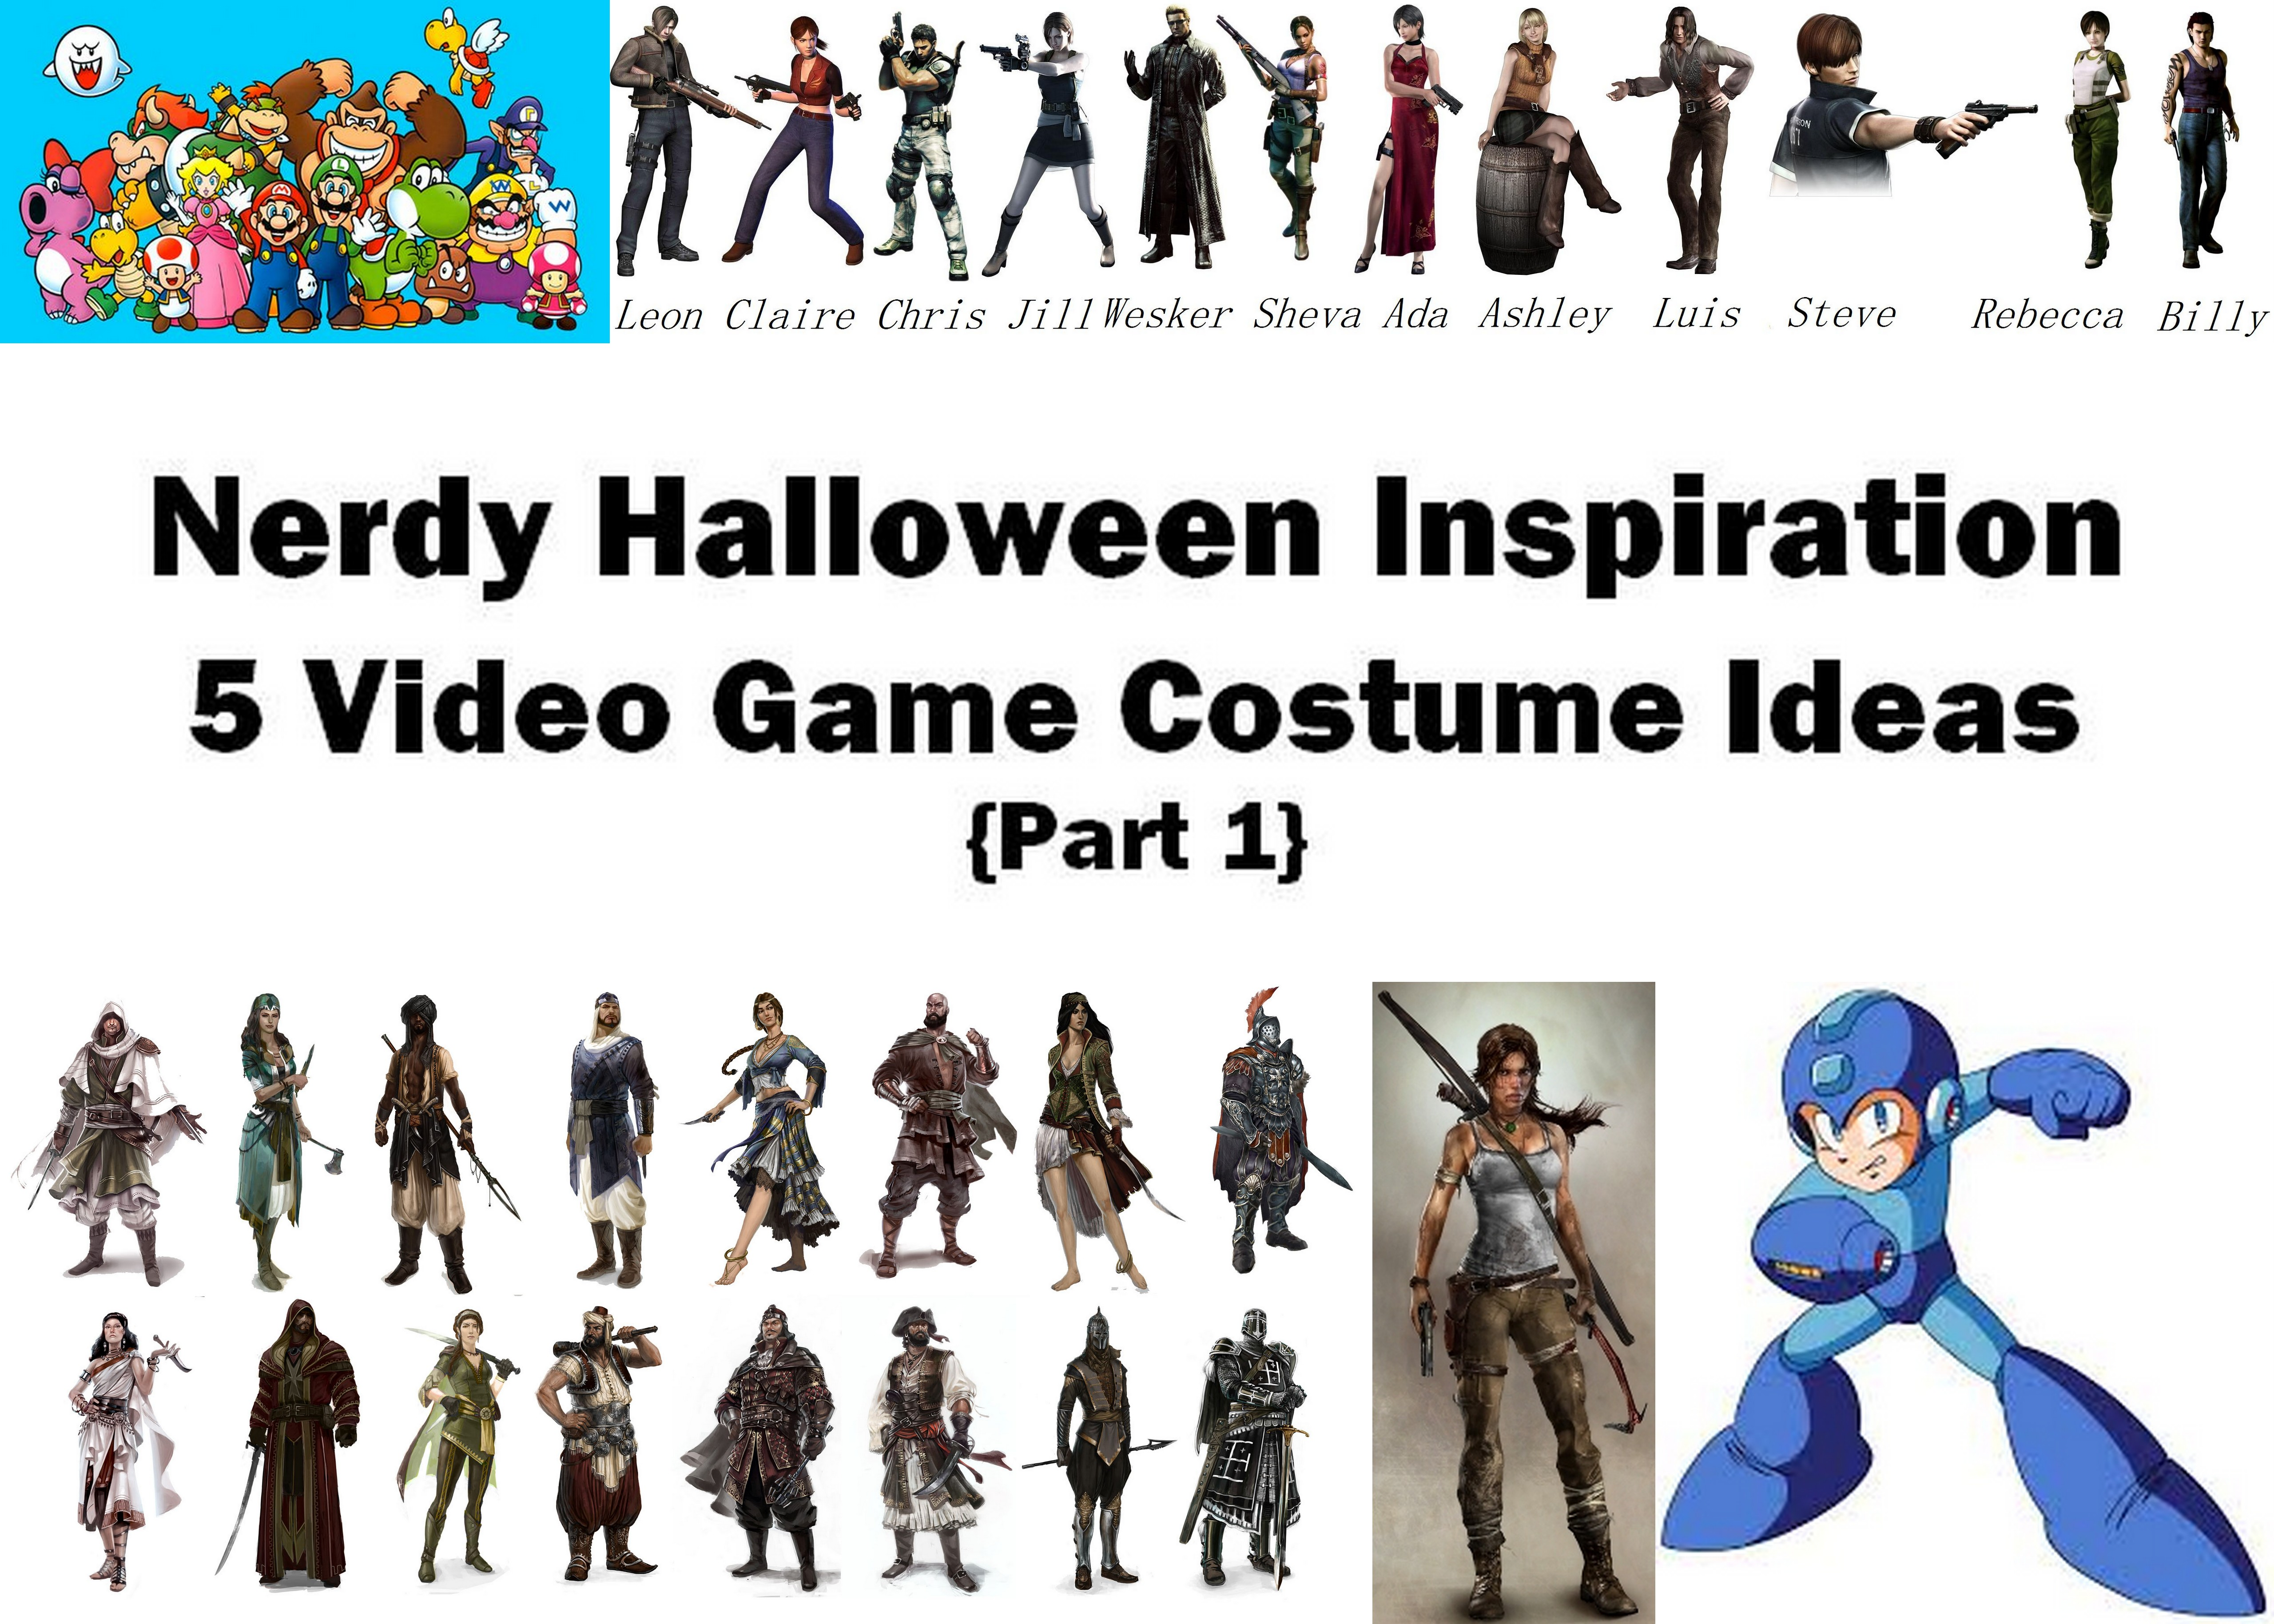 Halloween Video Game Costumes.Nerdy Video Game Halloween Costumes Part 1 The Love Nerds